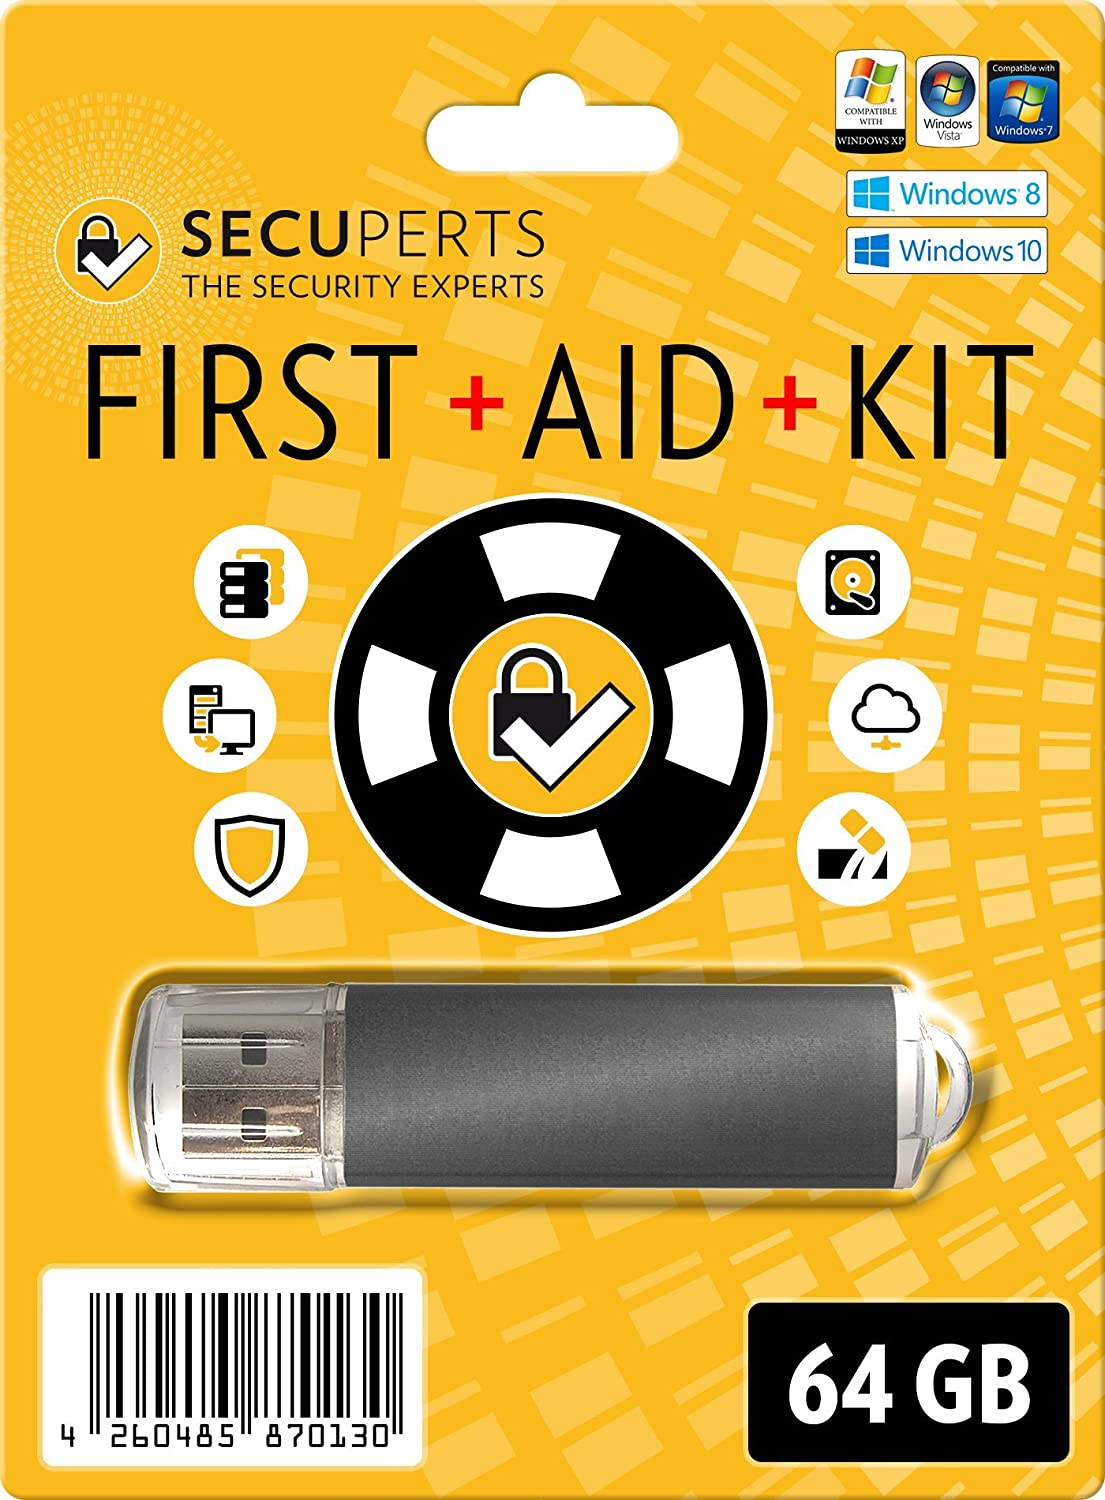 SecuPerts First Aid Miami Mall Kit Max 87% OFF - and Recovery Data Virus-Scanner Stick